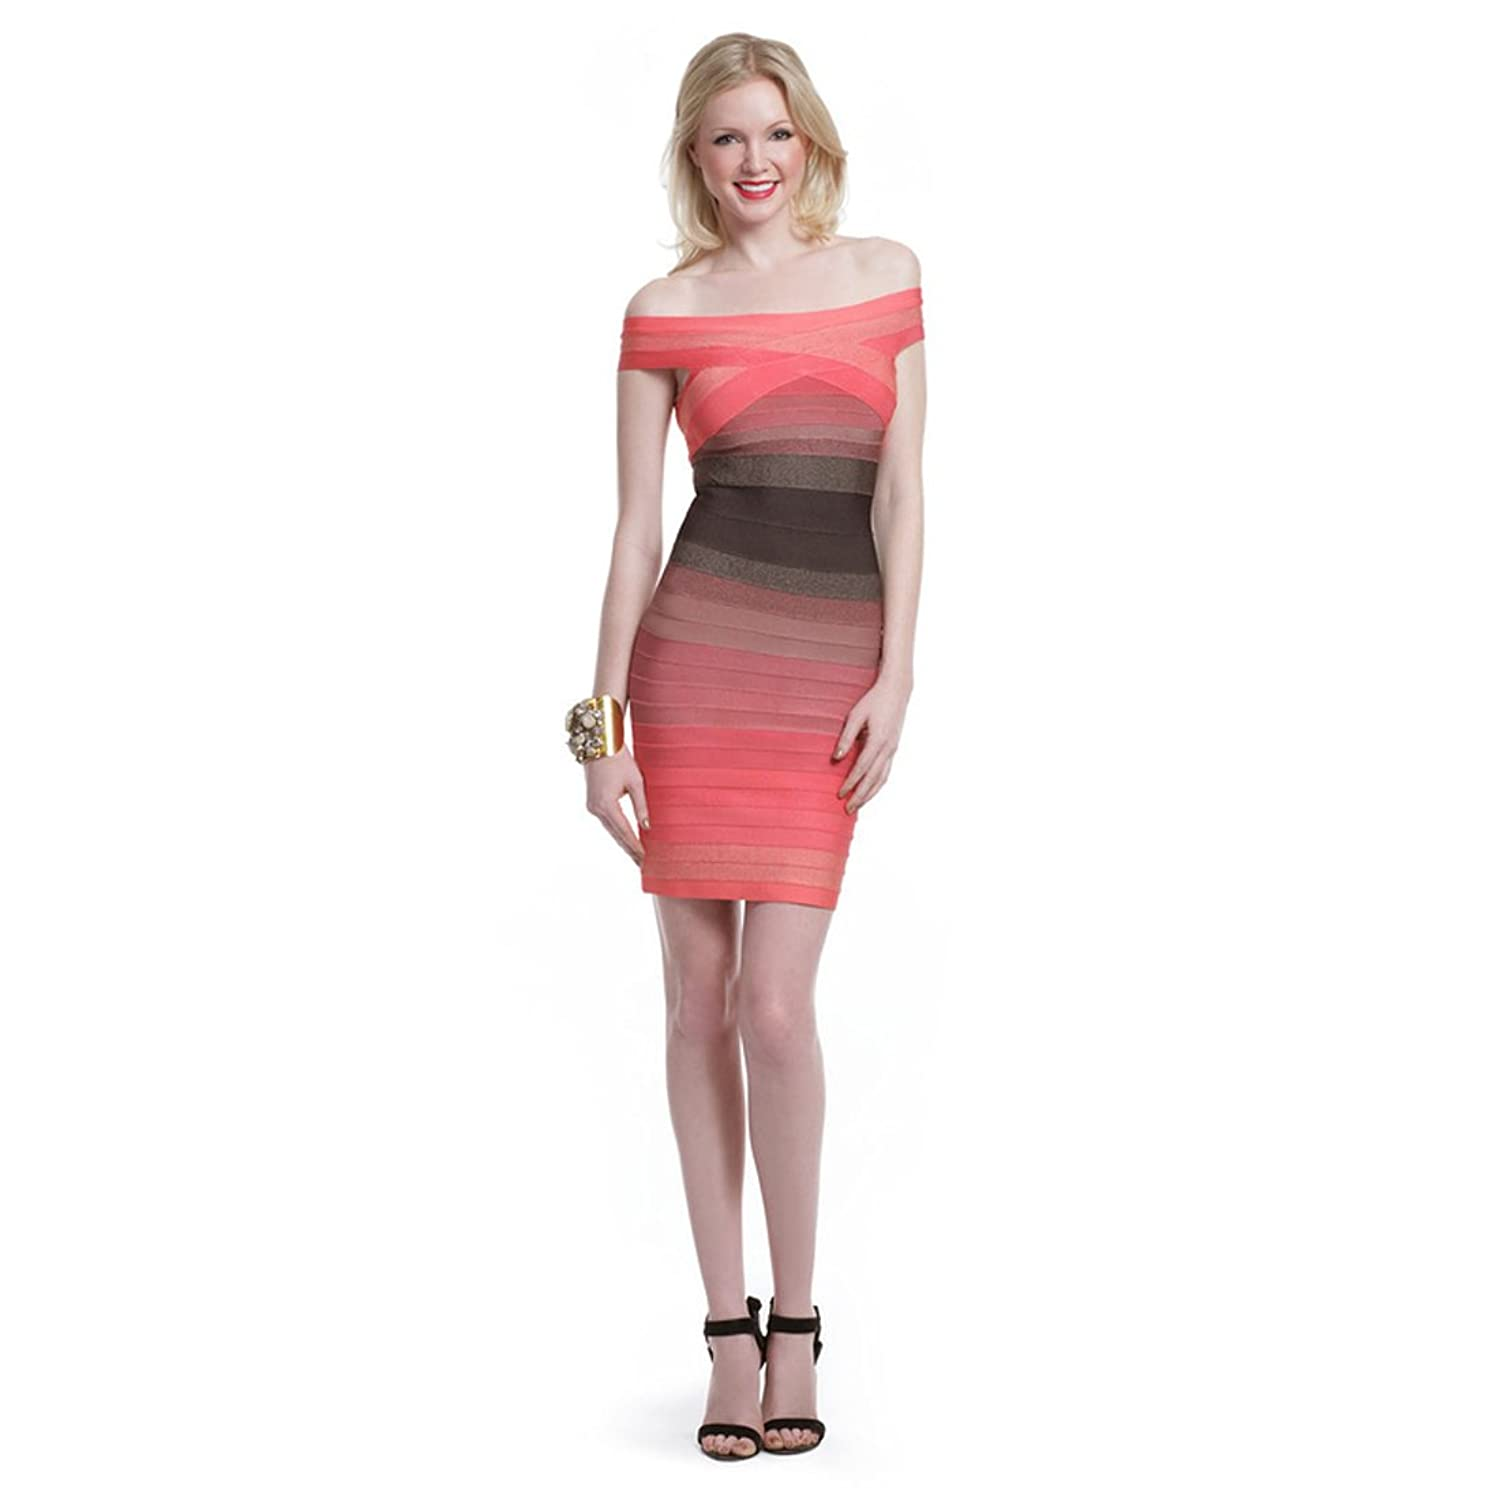 Hlbcbg Rayon Women's Bandage Bodycon Dress Cocktail Party Dress 2167